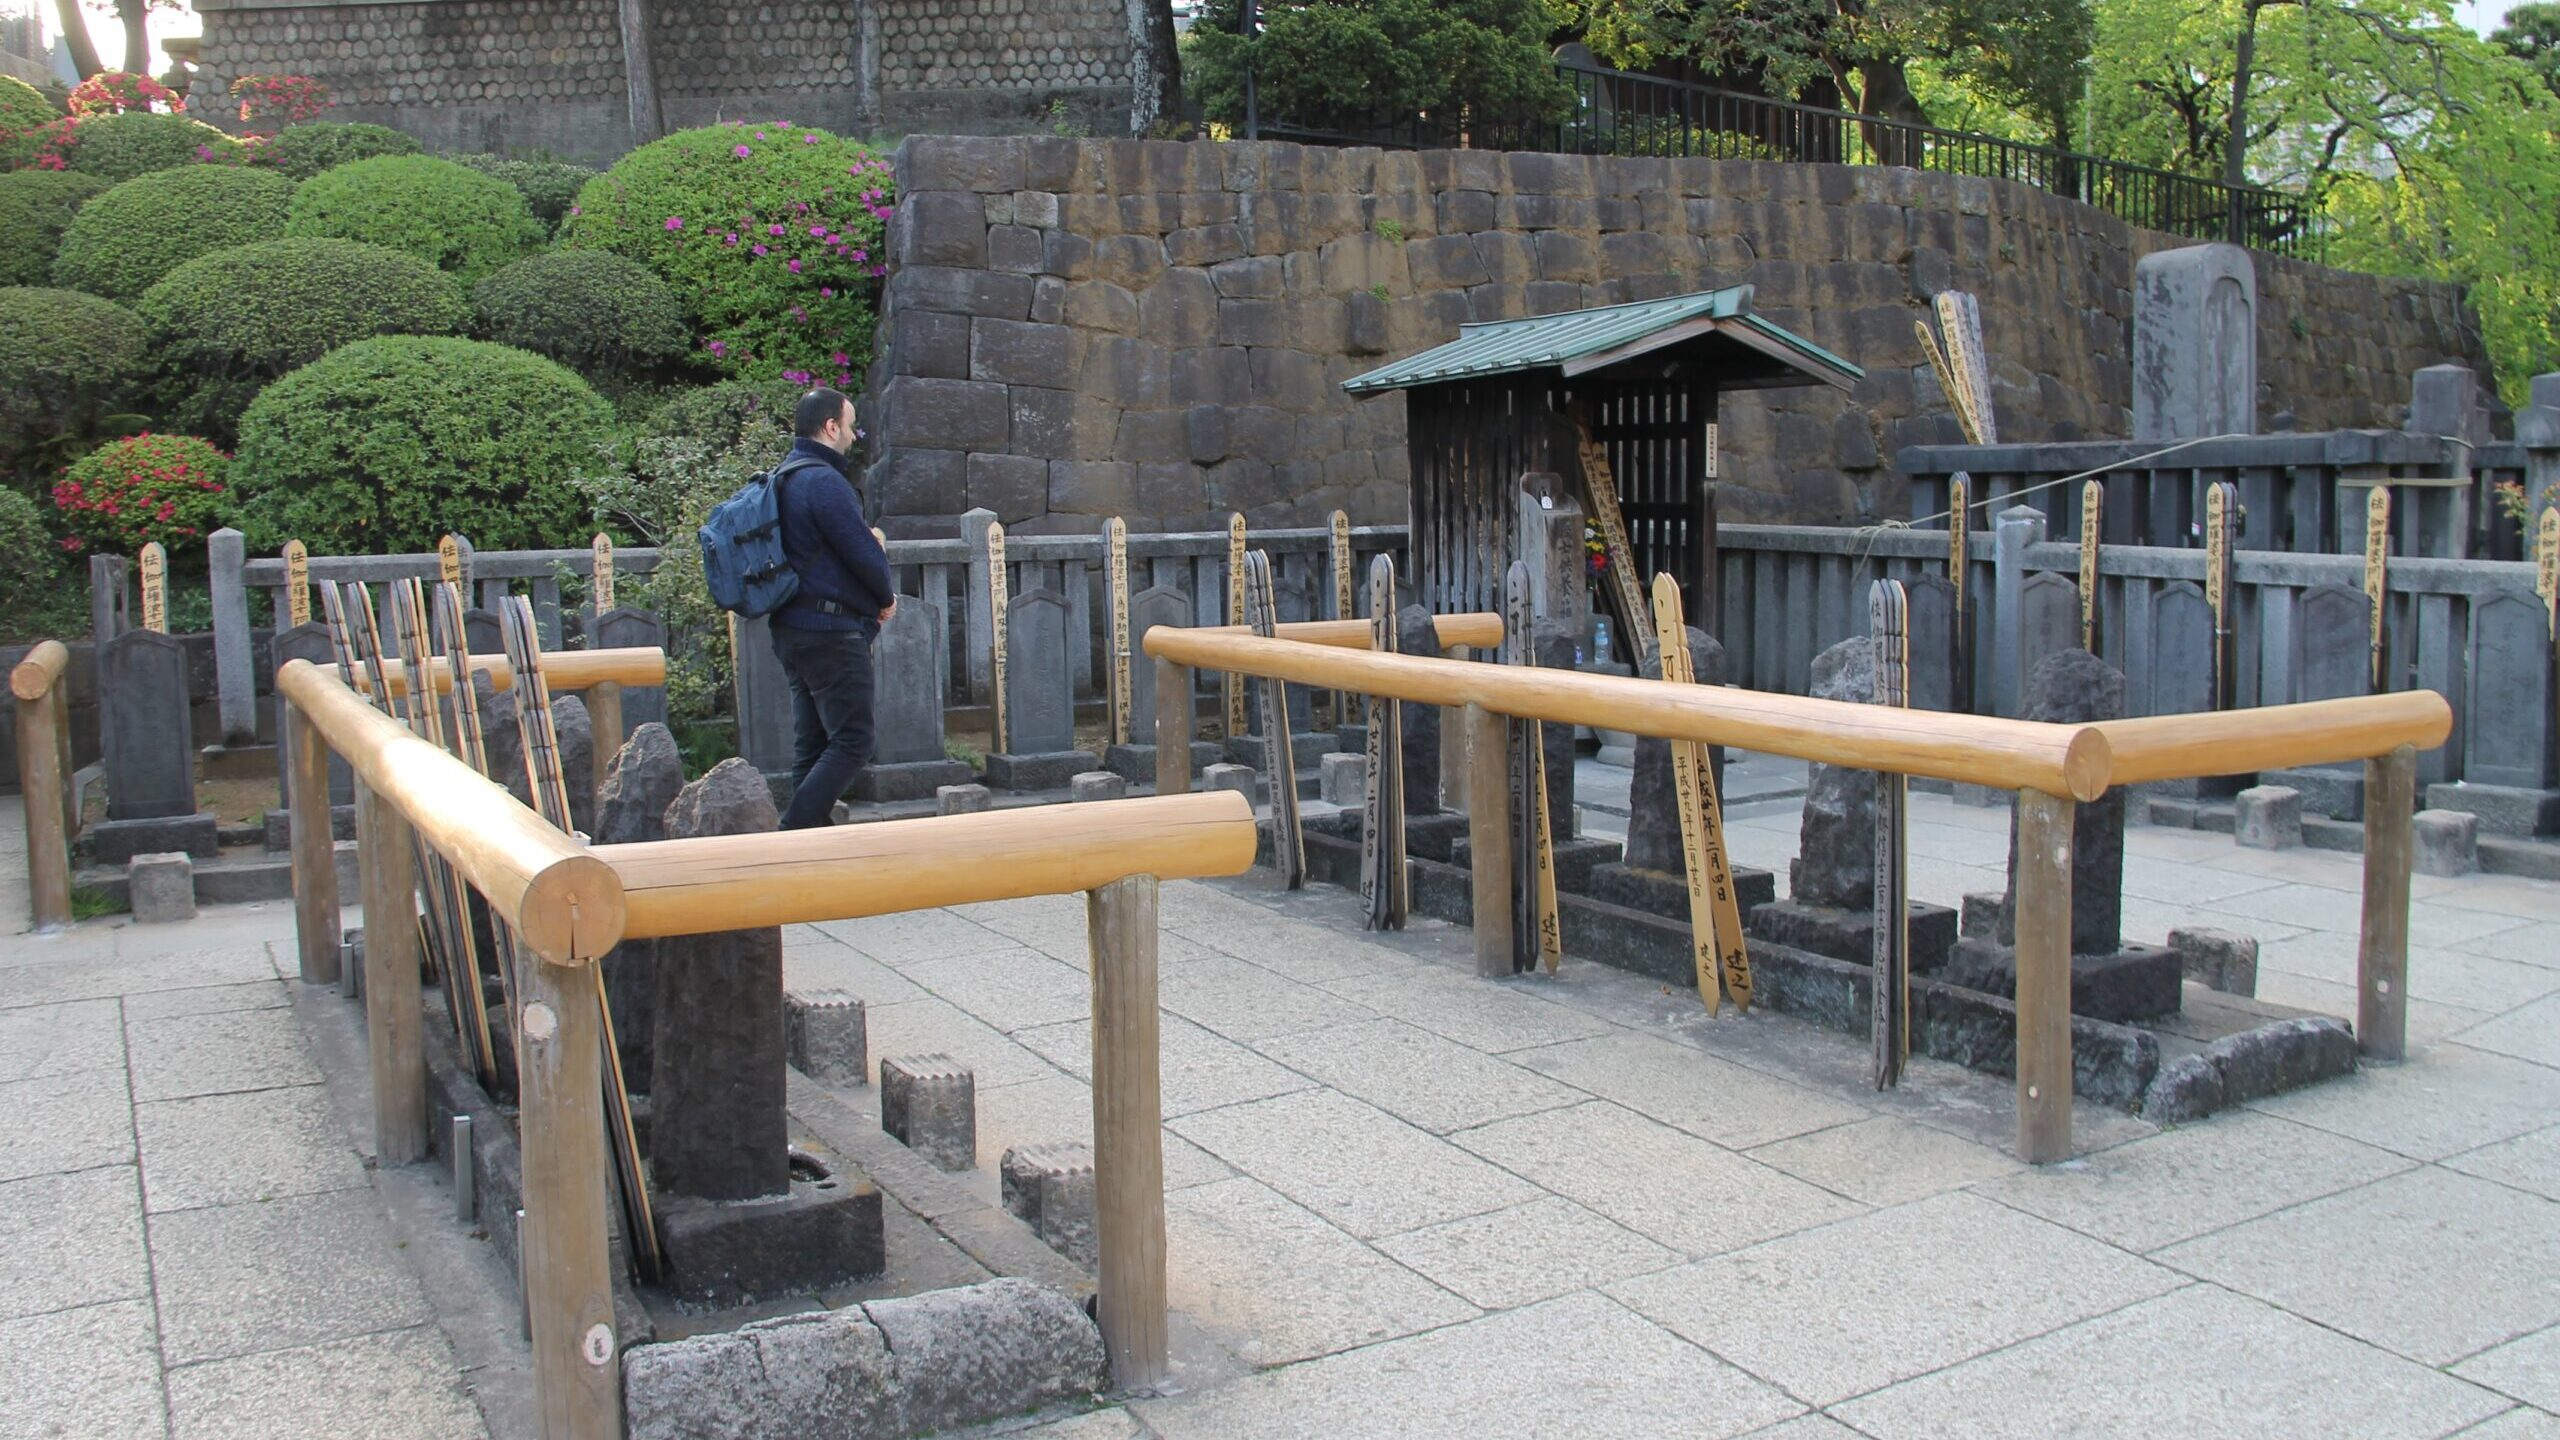 The ronin tombs